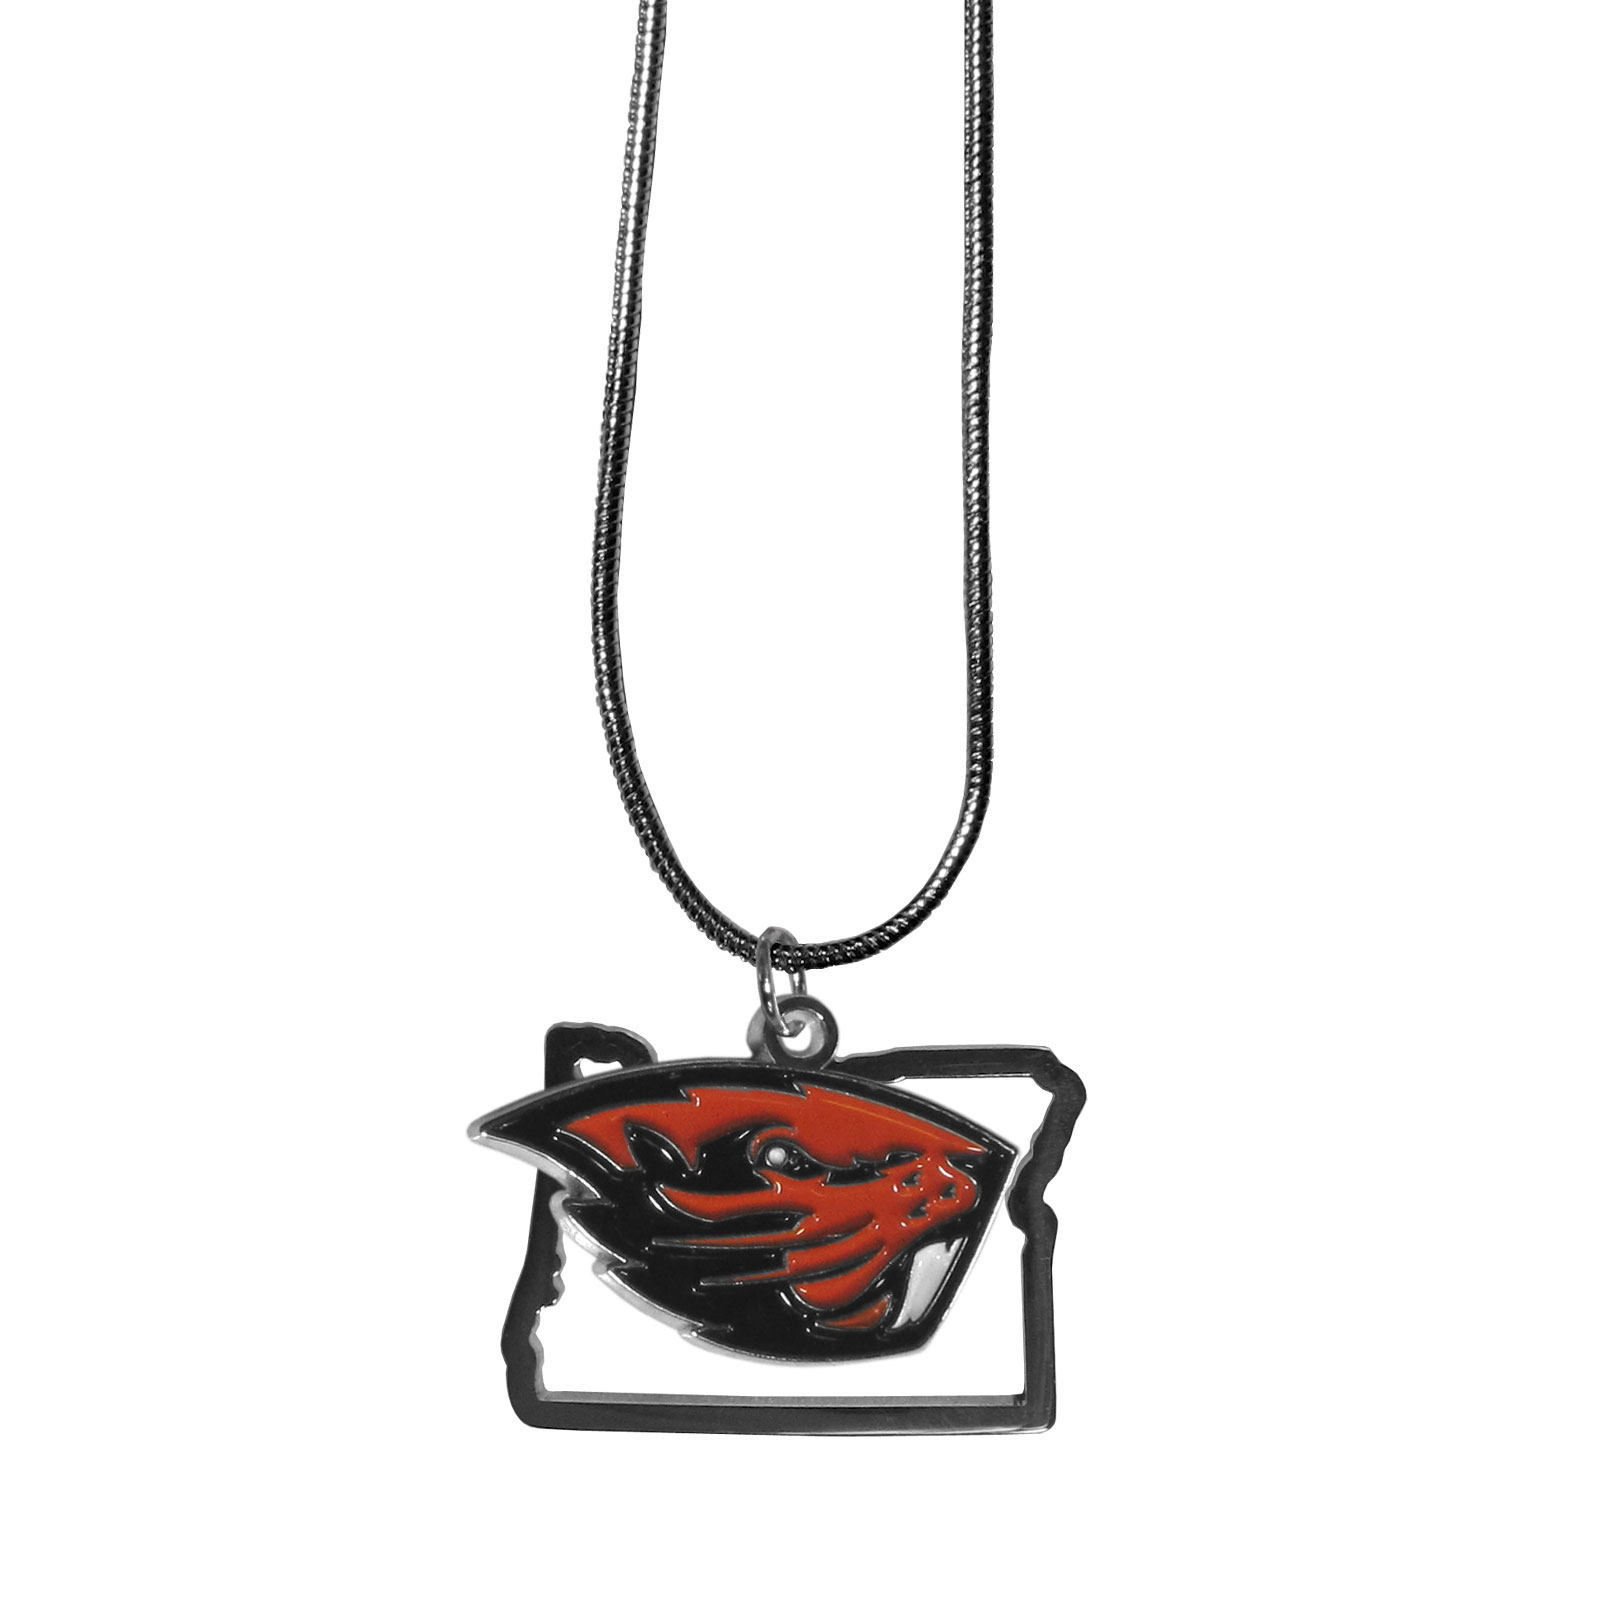 Oregon St. Beavers State Charm Necklace - Get in on the trend! State themes are a trend that just keeps getting more popular and these necklaces take the state style and give it a sporty twist with a Oregon St. Beavers added to the state outline charm. The come on a snake chain that is 22 inches long.